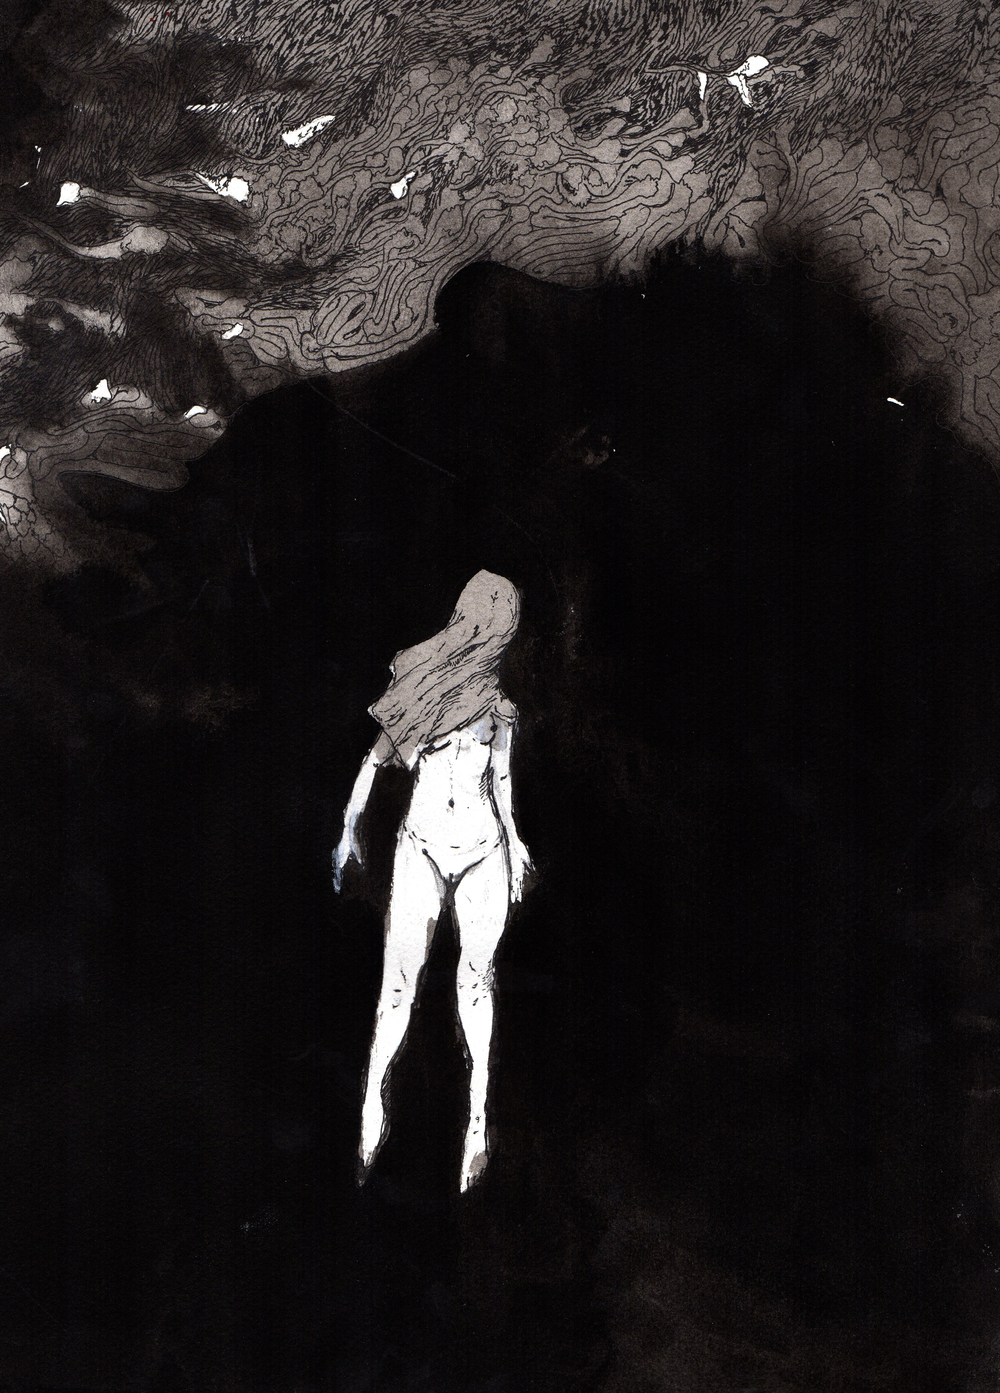 Darkness I Became.   2013. 12 x 15 inches. Ink wash on paper.